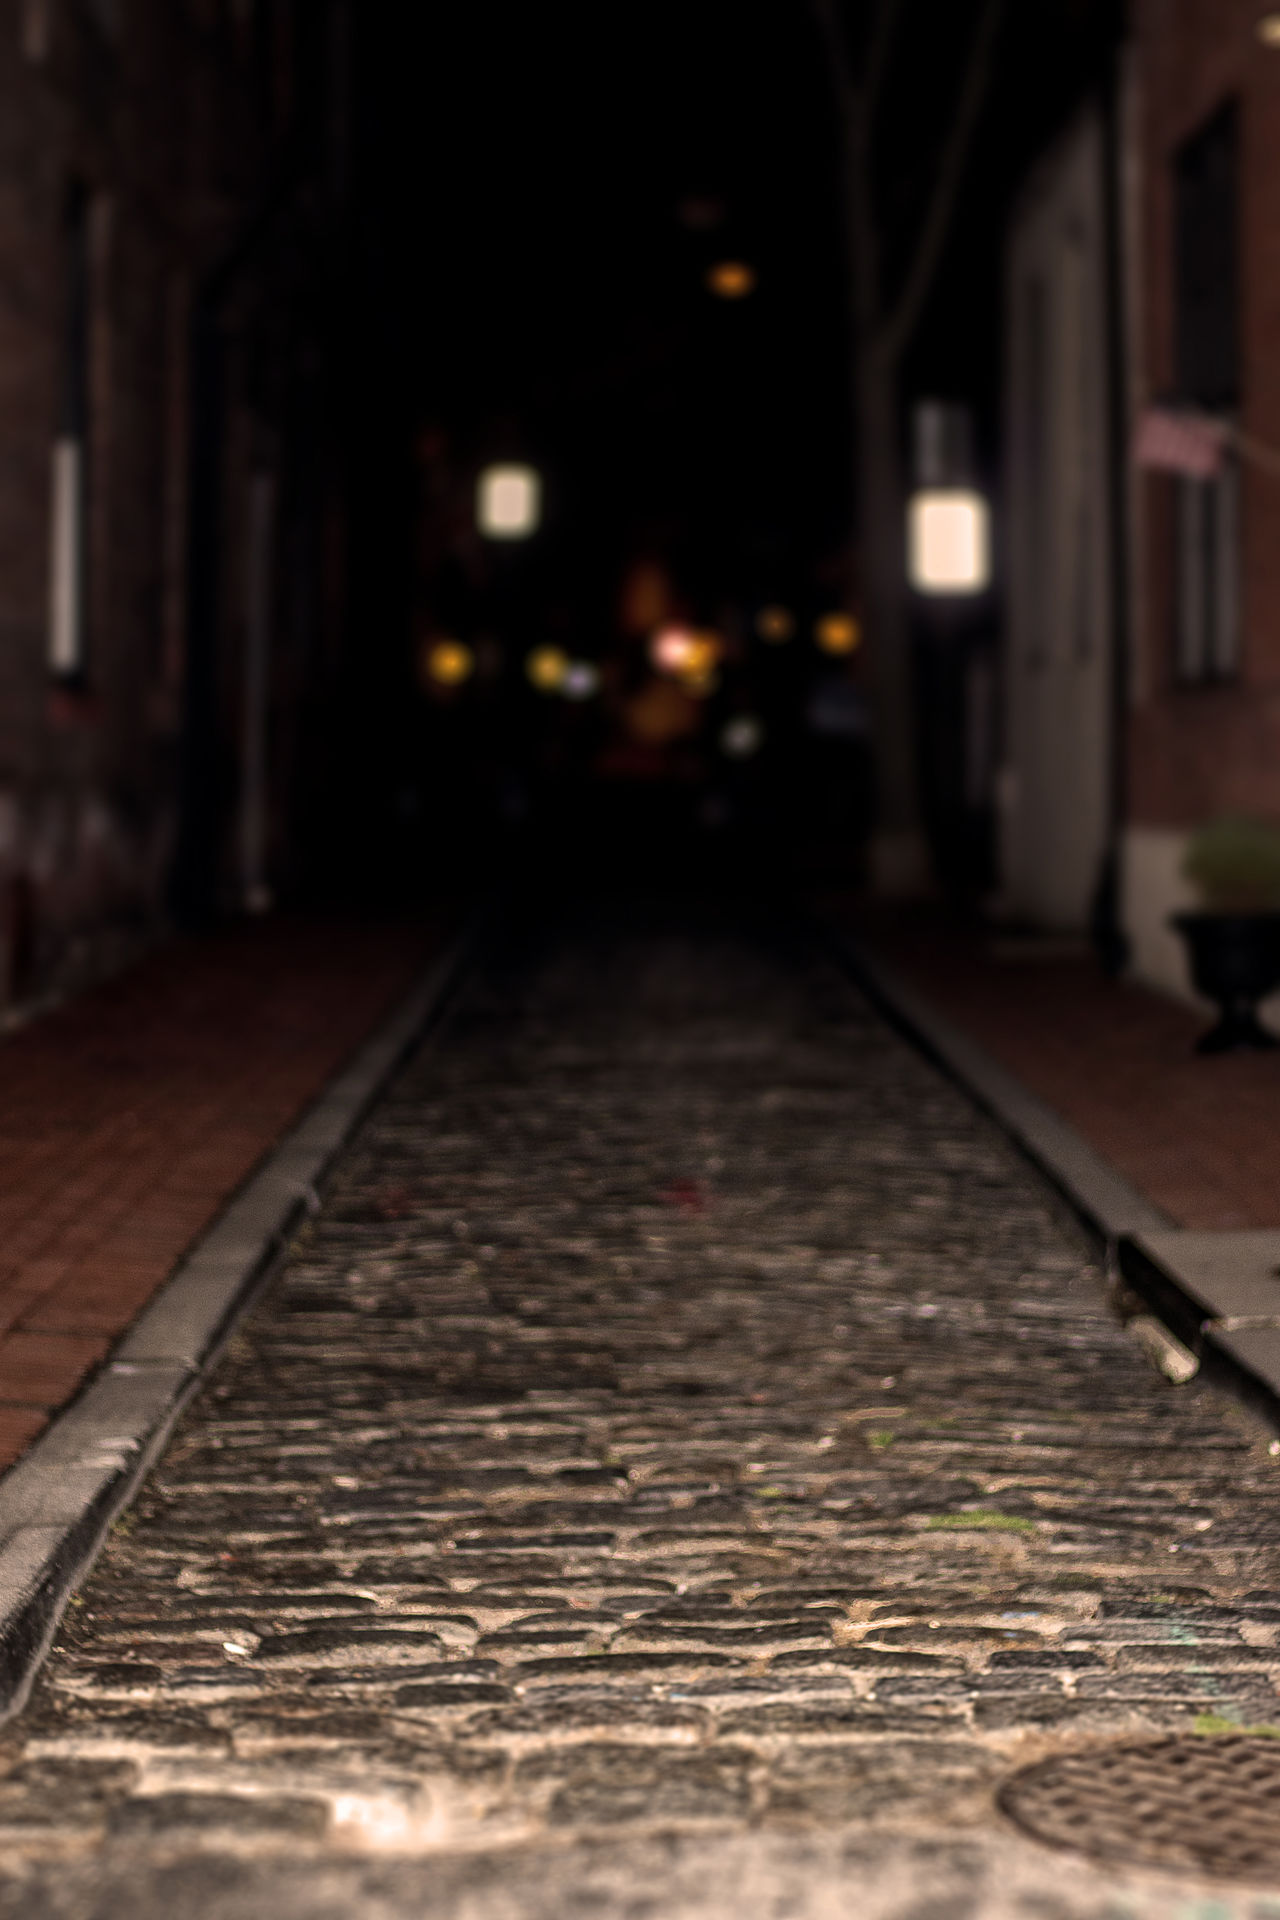 This is a shallow depth of field shot showing a cobblestone alleyway in south Philadelphia. Alleyway Architecture Built Structure City Close-up Cobblestone Cobblestone Streets Dof Historical Sights Illuminated Night No People Outdoors Pathway South Philadelphia Surface Level The Way Forward Tilt-shift